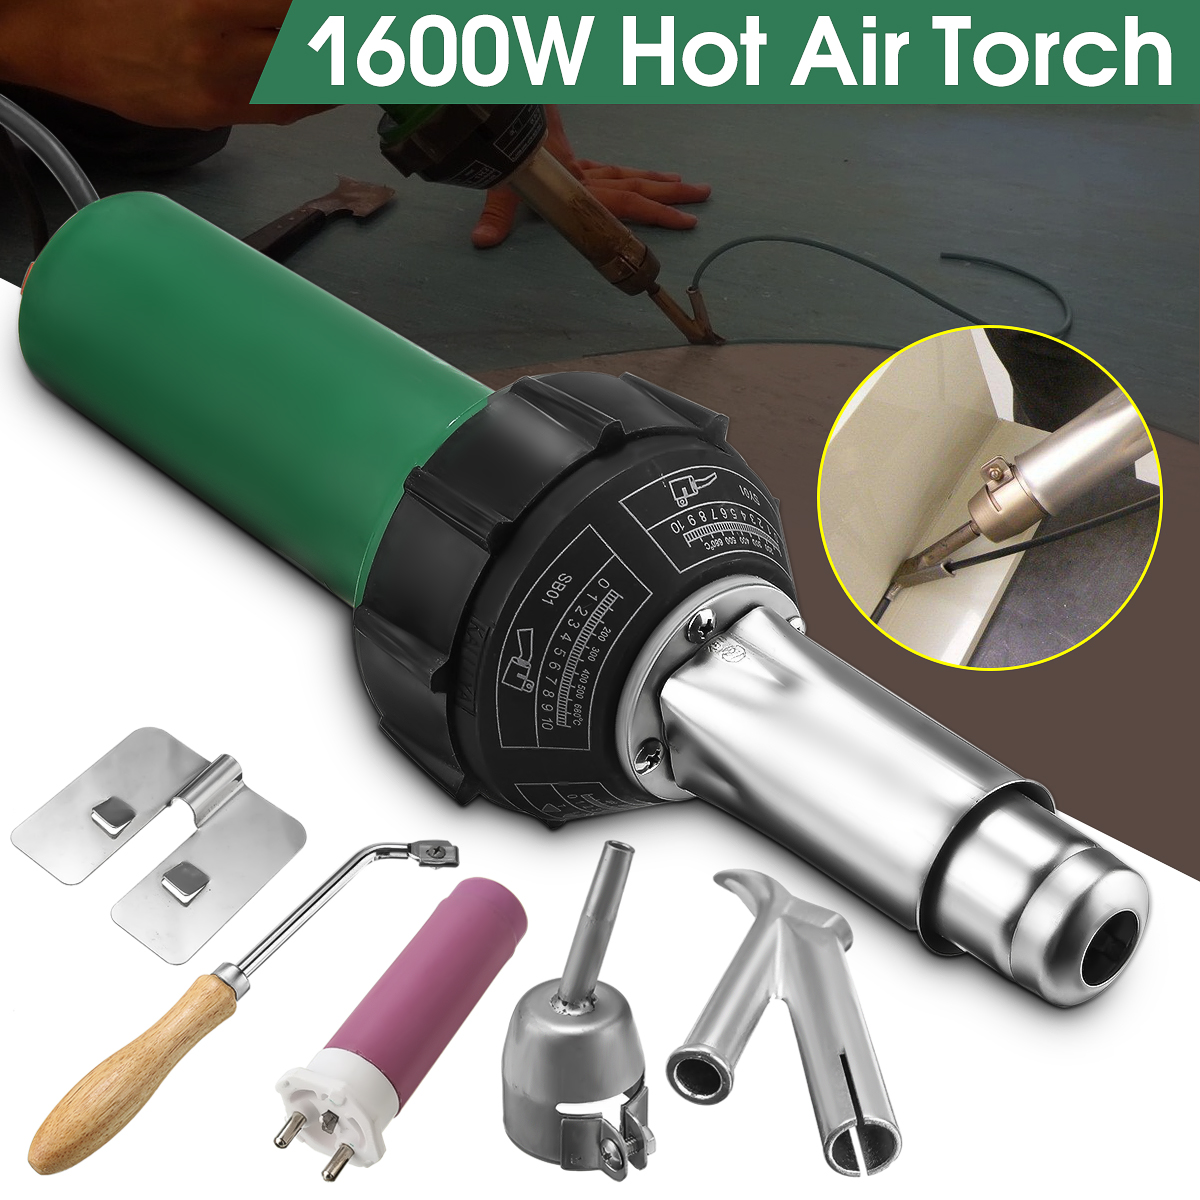 1600W 50/60HZ AC 220V Electronic Hot Air Plastic Welding Torch Gun With Nozzle Heating Core Hat Mouth Kit For Welding Machine